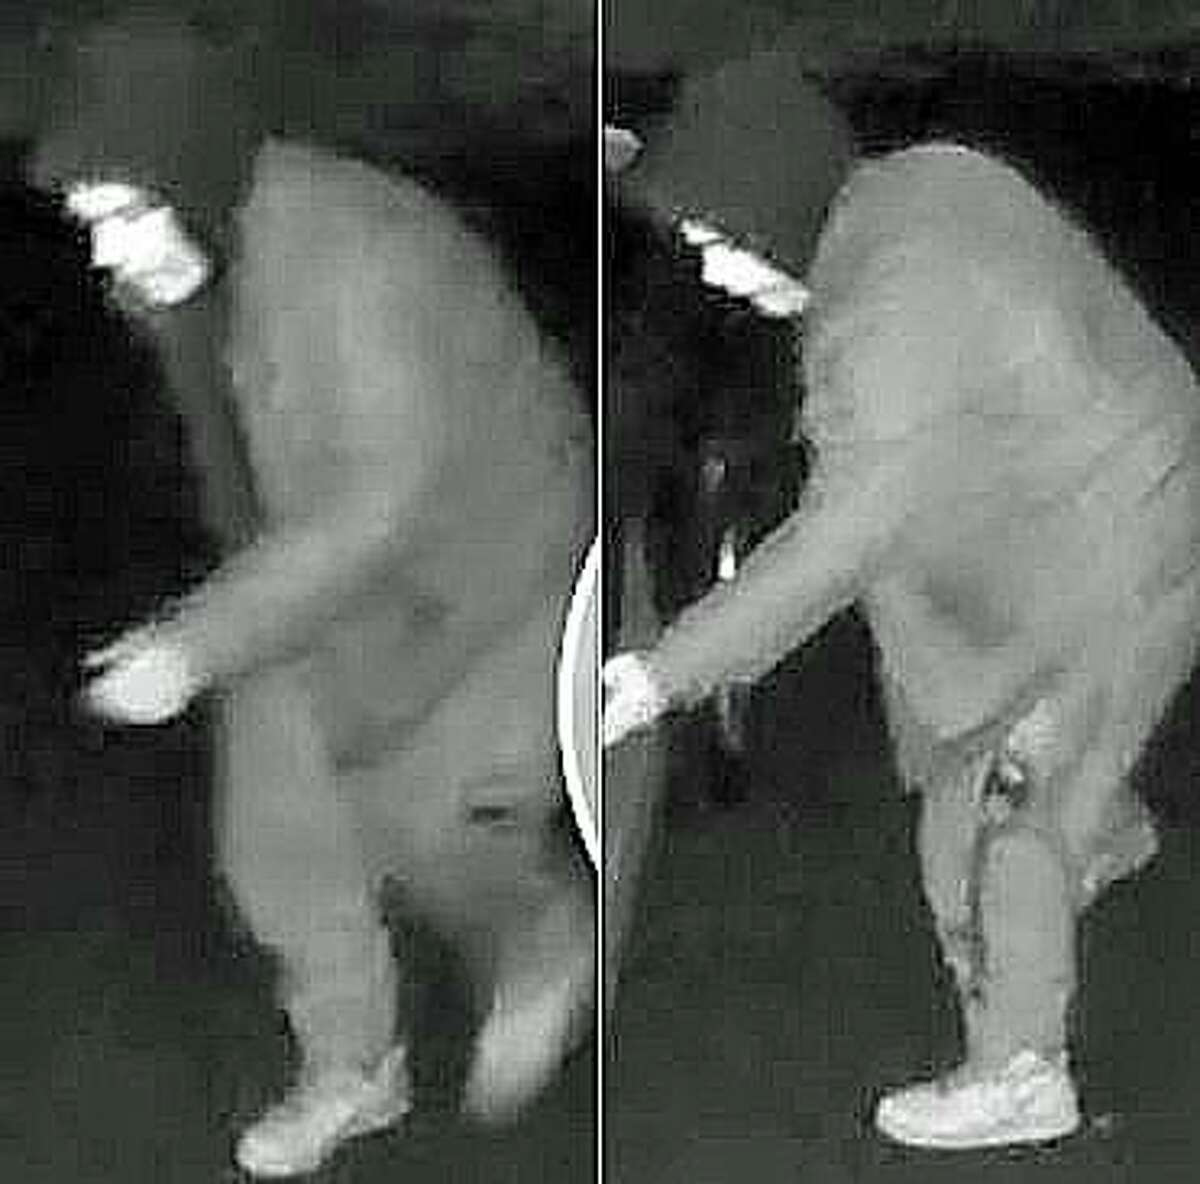 Police in two Connecticut towns are looking for one or more suspects who wore ghoulish masks while they checked out unlocked vehicles in the dead of night.